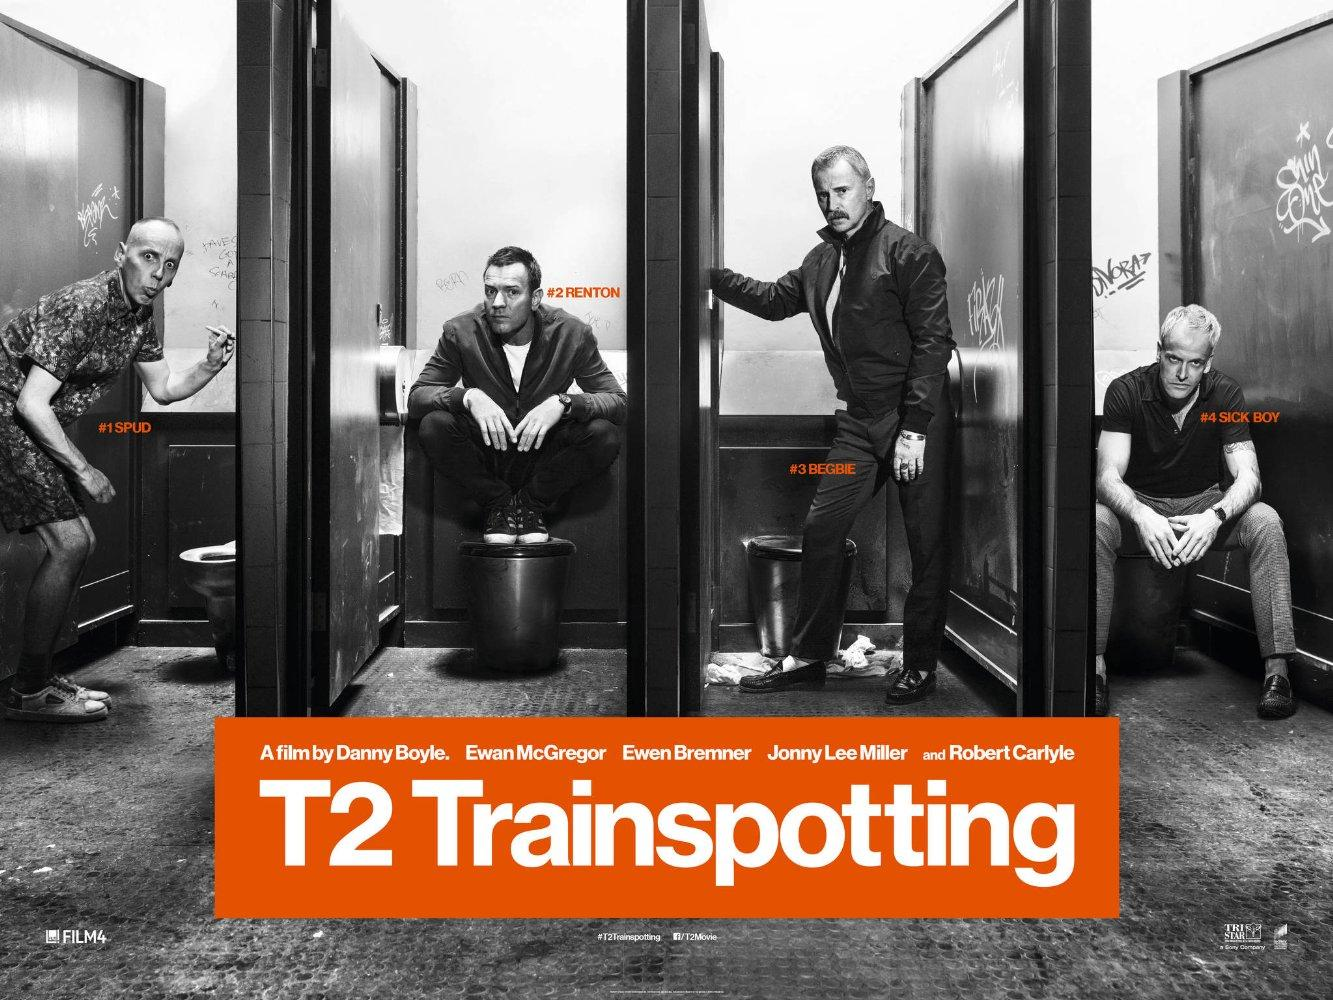 مشاهدة فيلم T2 Trainspotting (2017) مترجم HD اون لاين